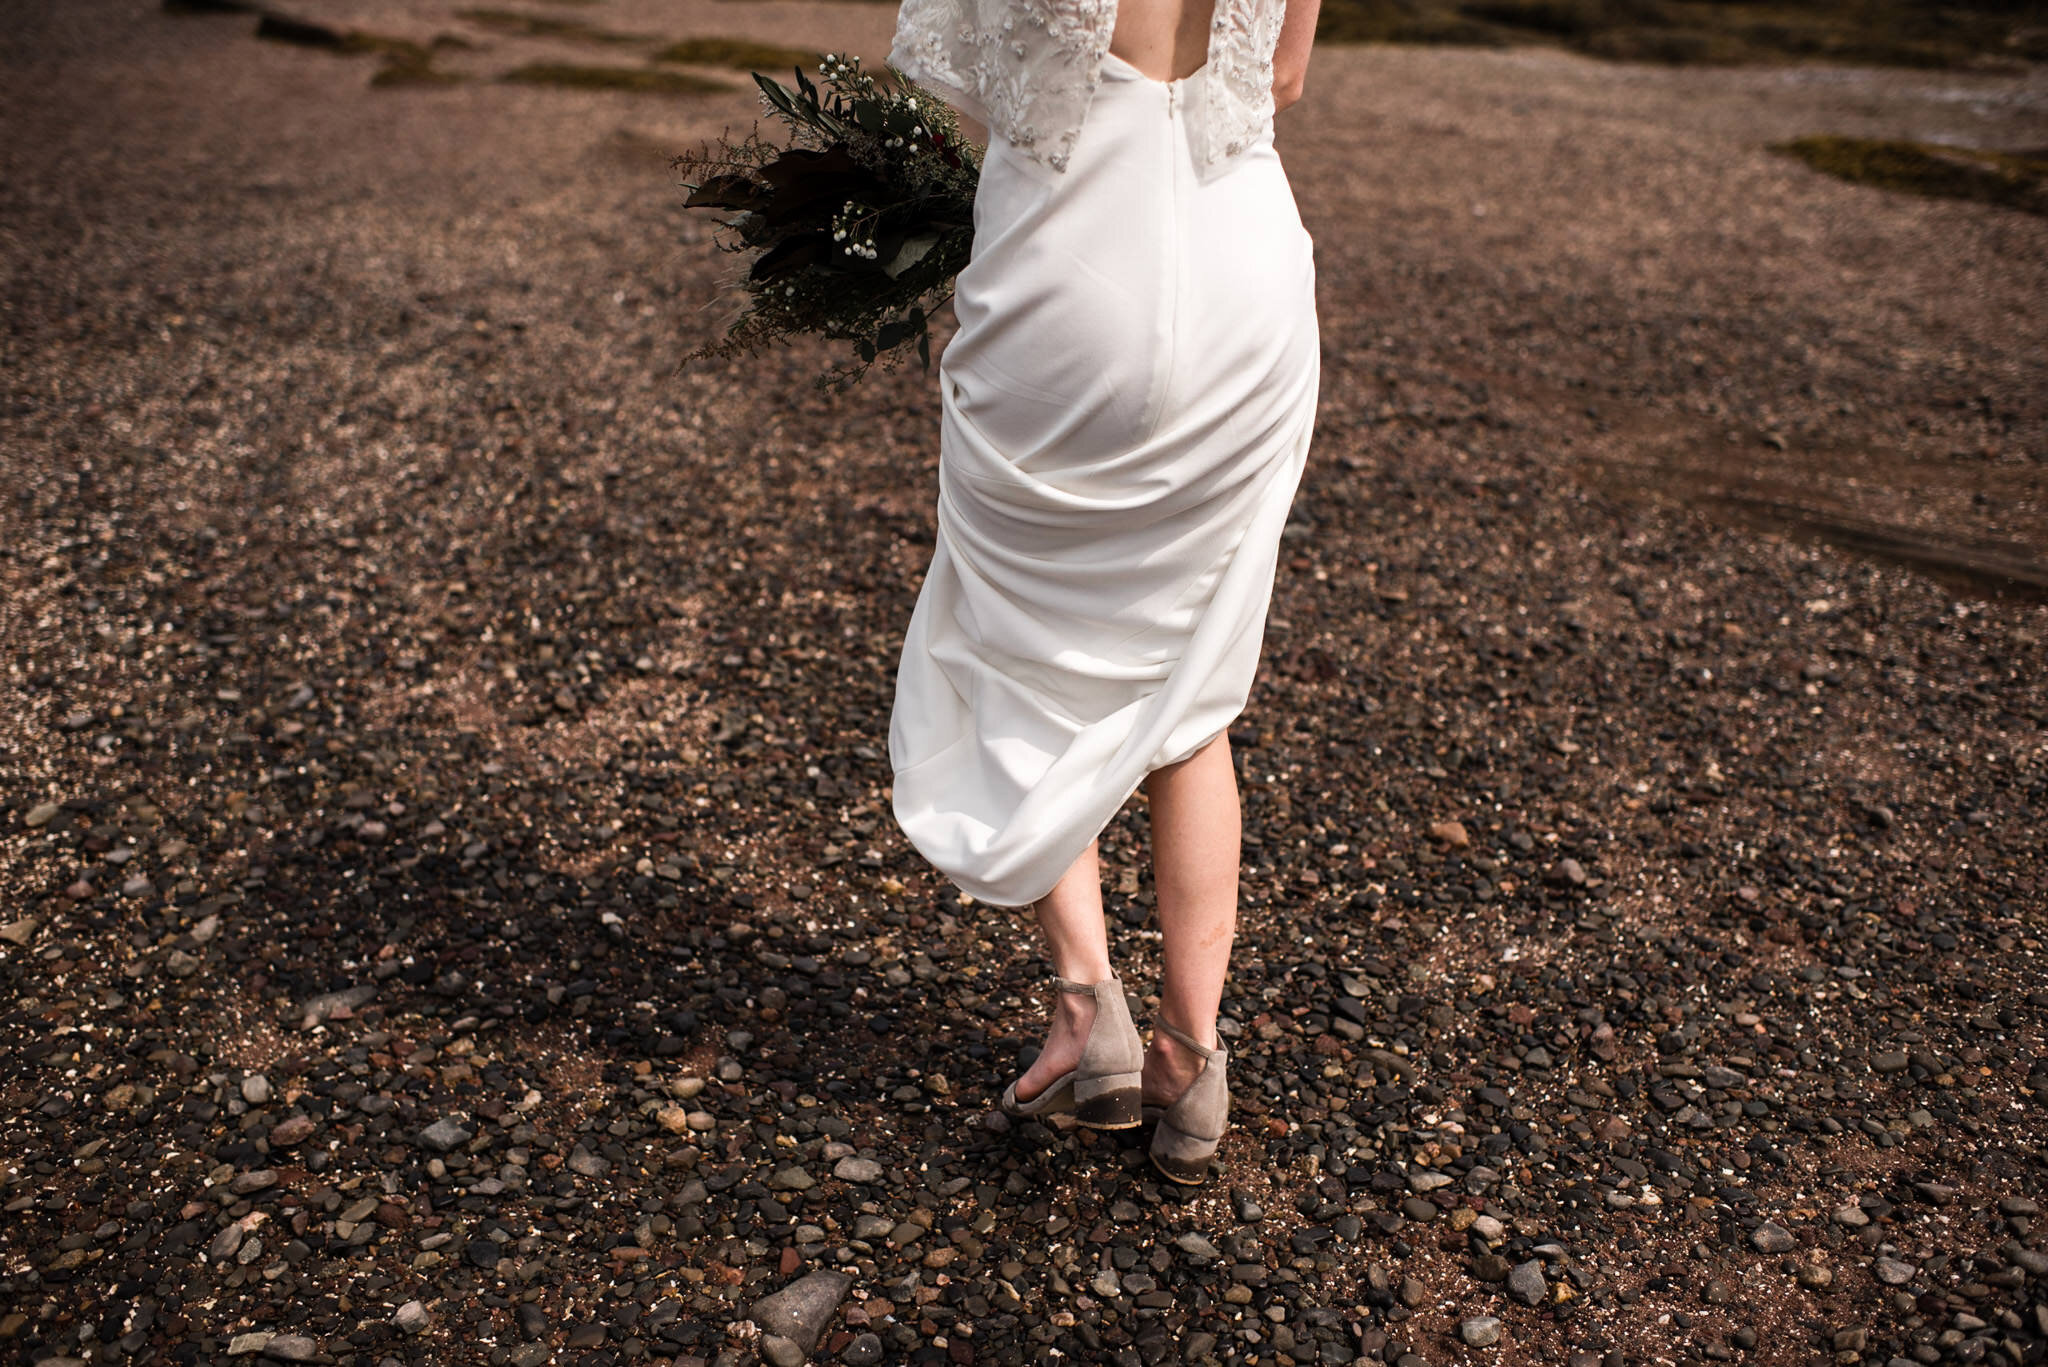 226-slip-dress-capelet-wedding-bride-st-andrews-by-the-sea-toronto-photography.jpg